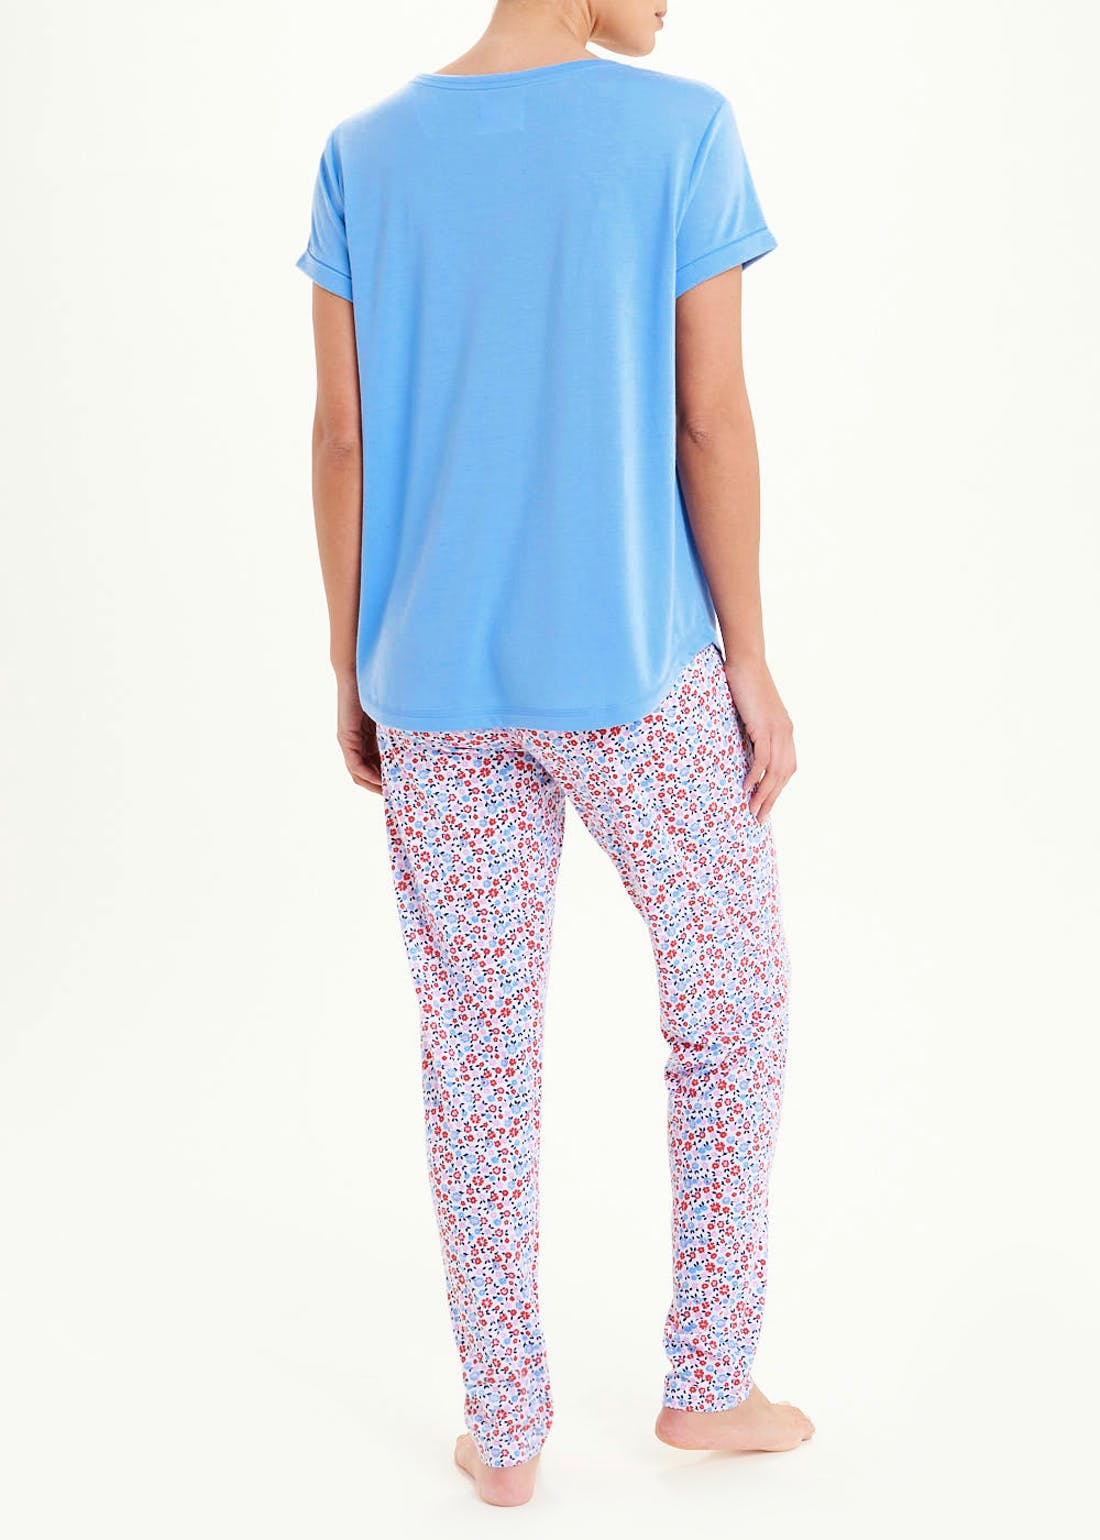 Love Slogan Floral Pyjamas